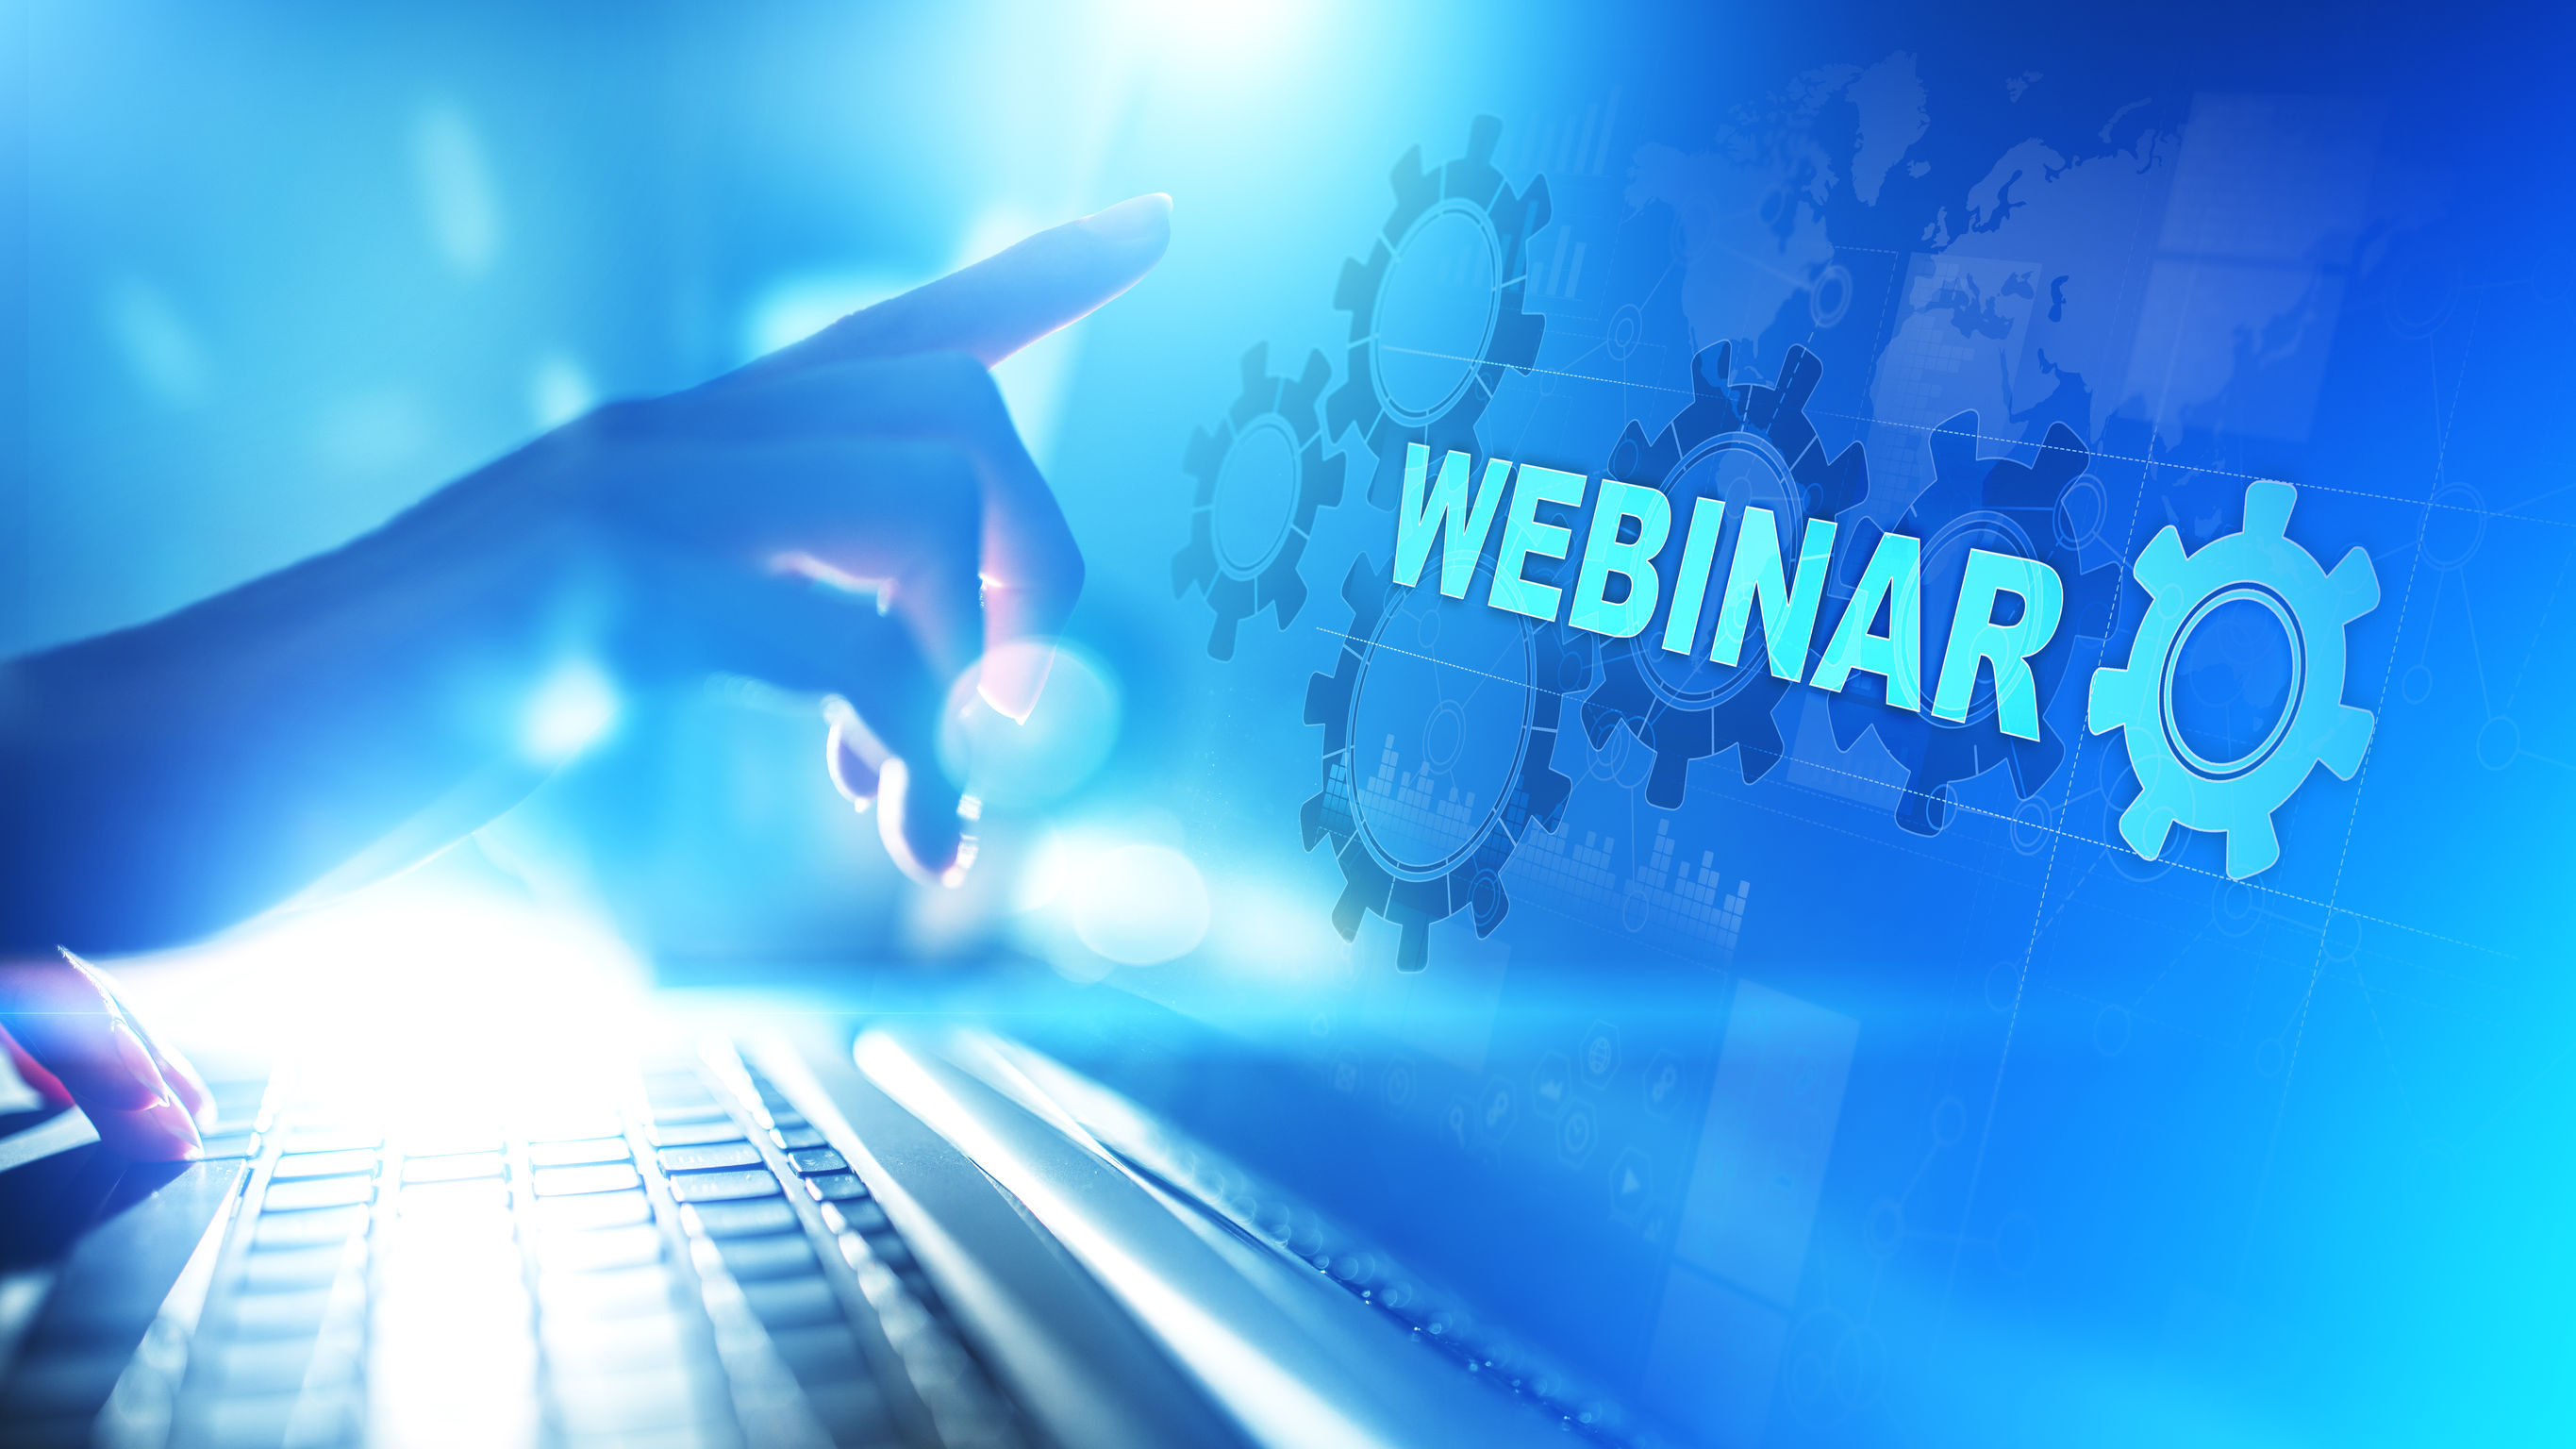 Learn How to Streamline Your Business in Our August Webinars